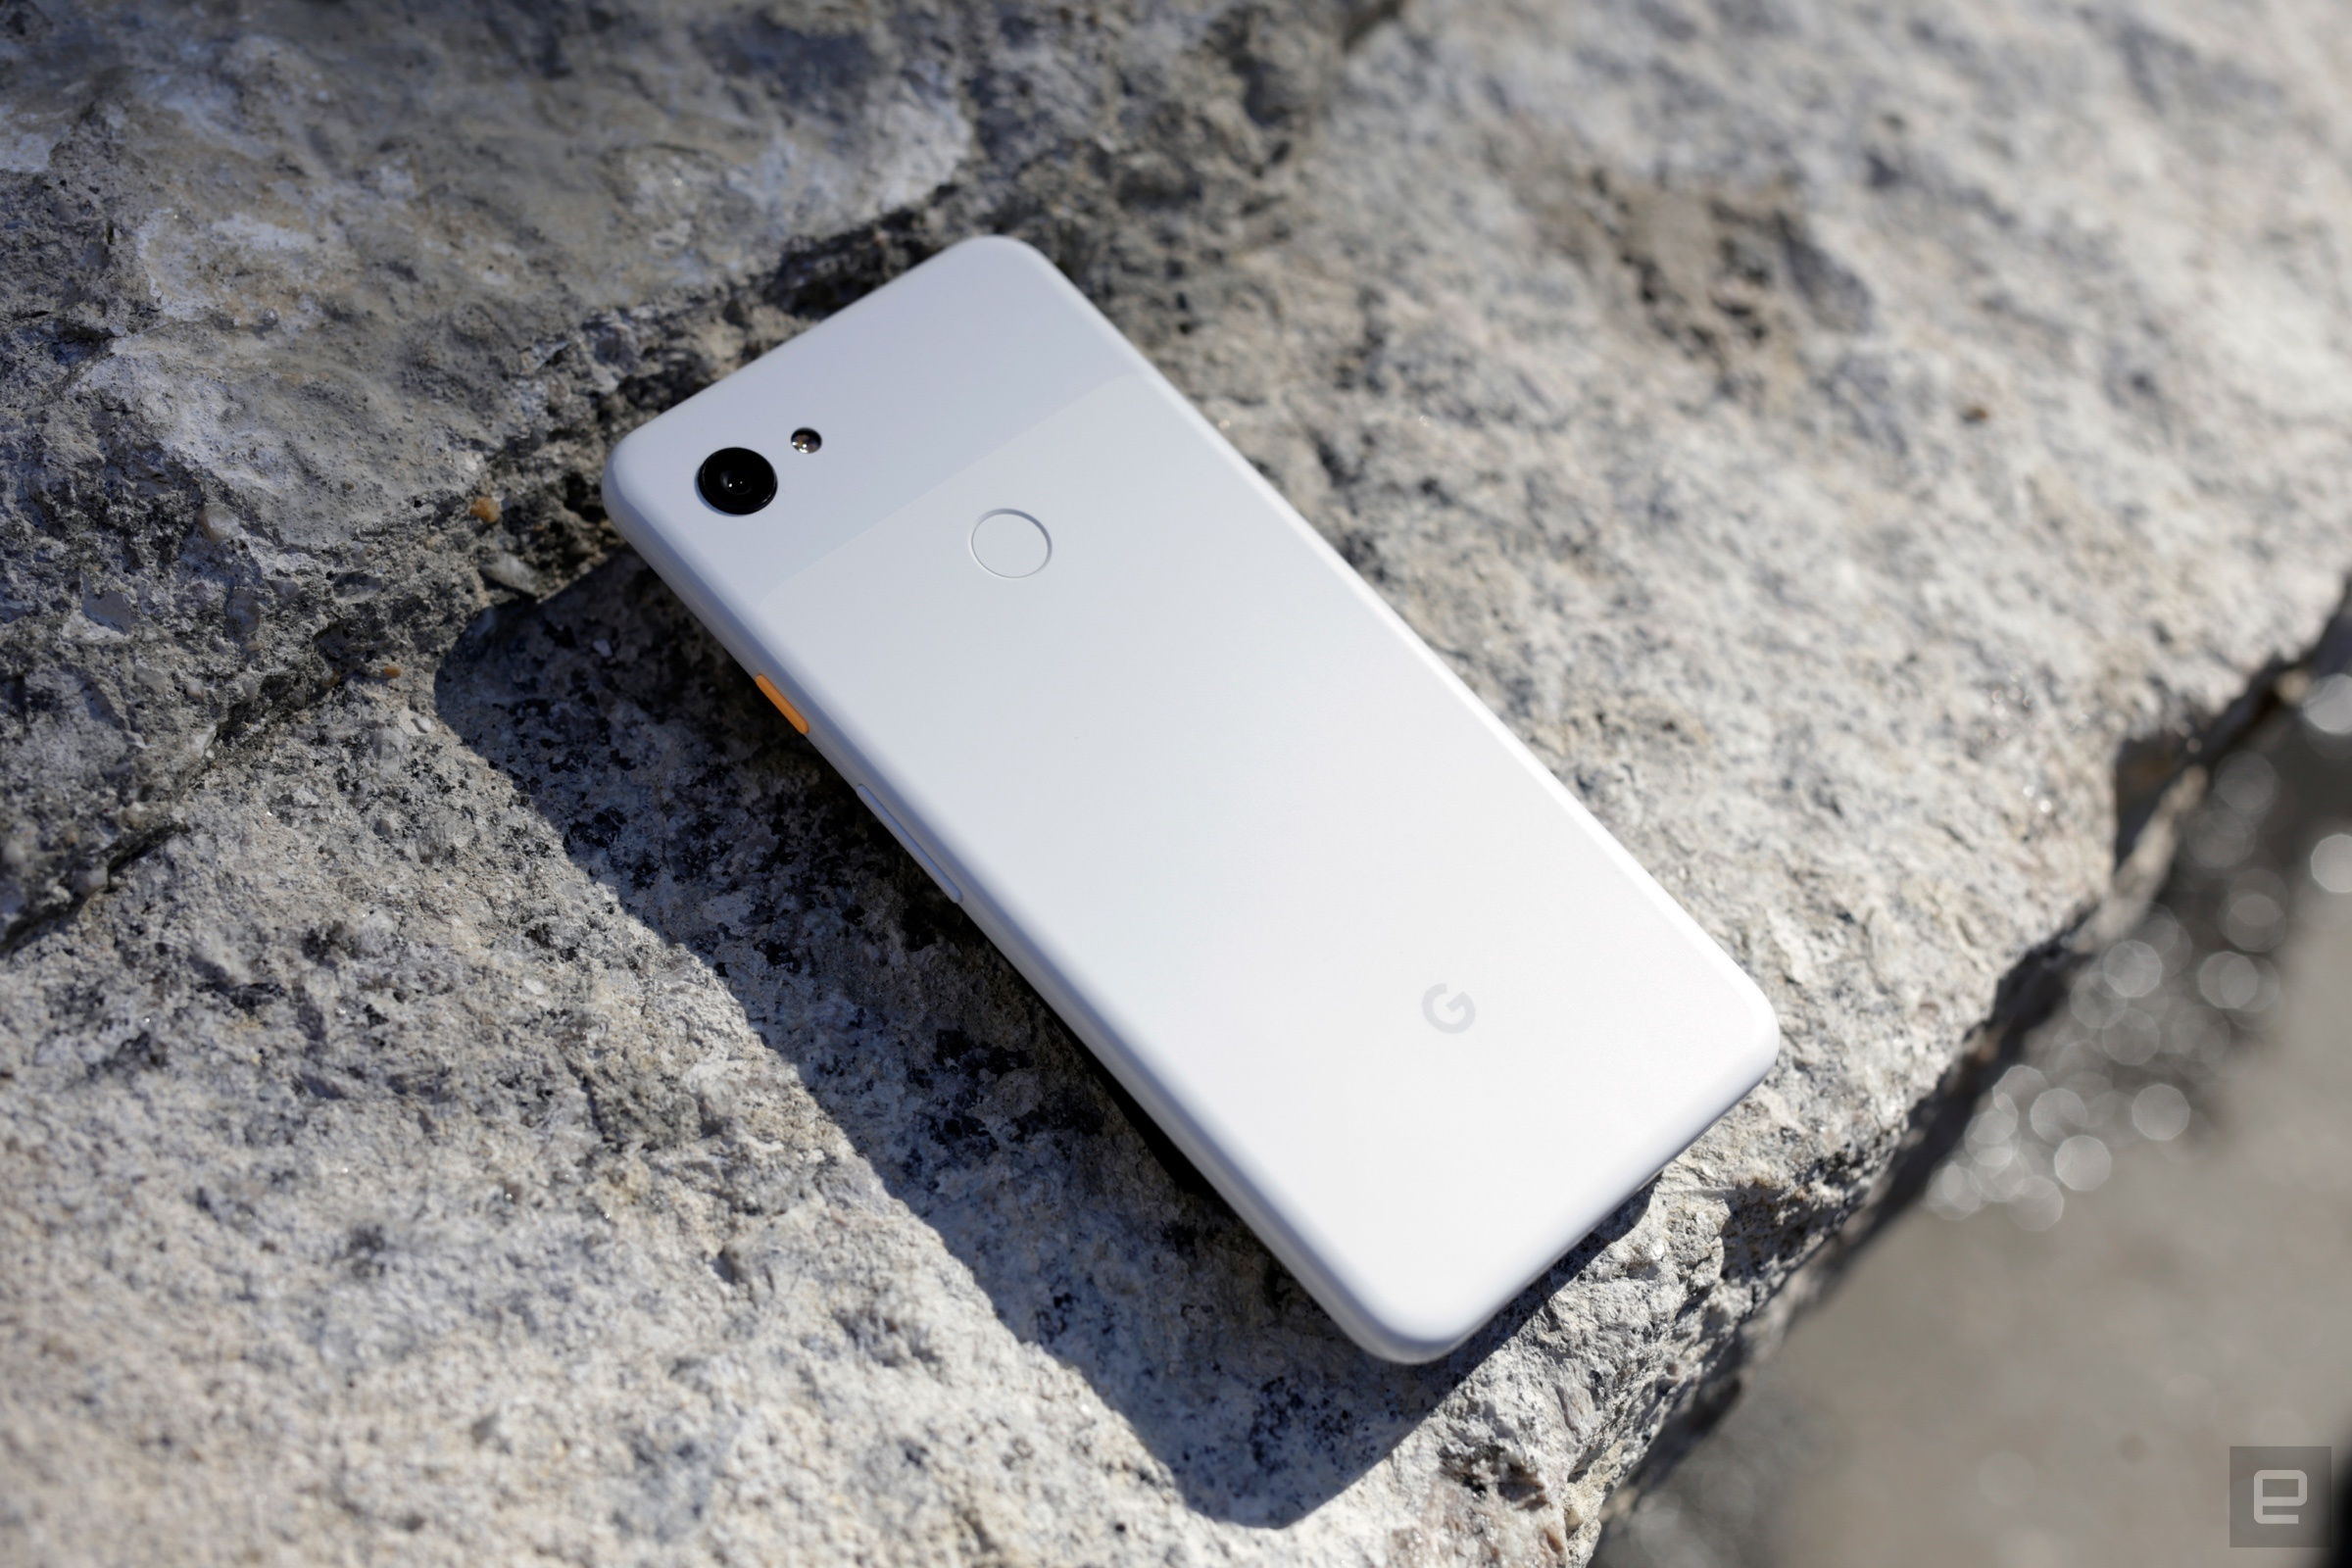 Image bricks some Android phones when used as wallpaper Engadget 2400x1600